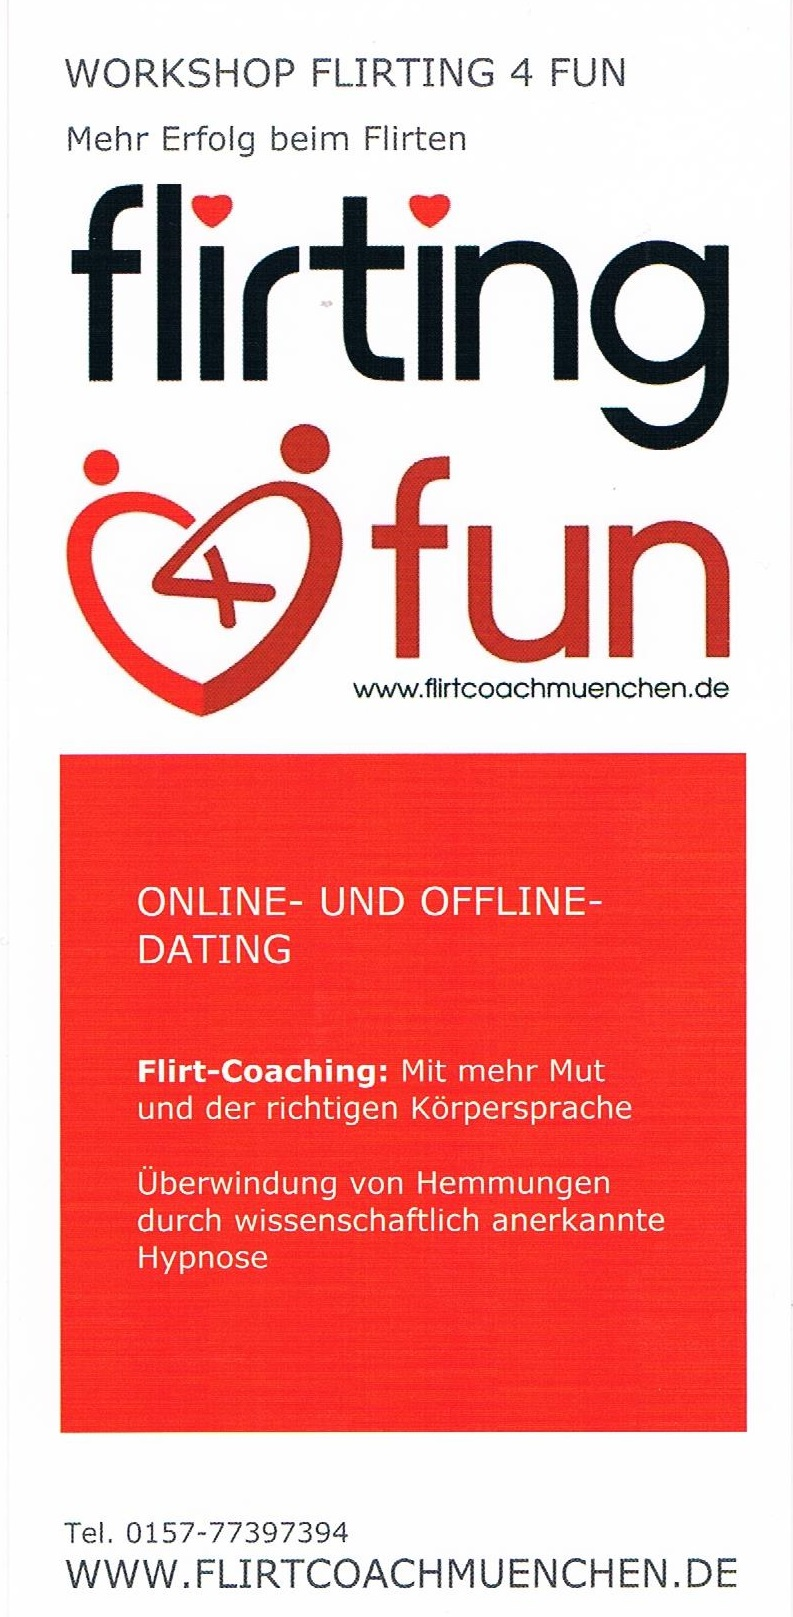 Flyer workshop Flirting 4 fun - Farbe: rot/weiß